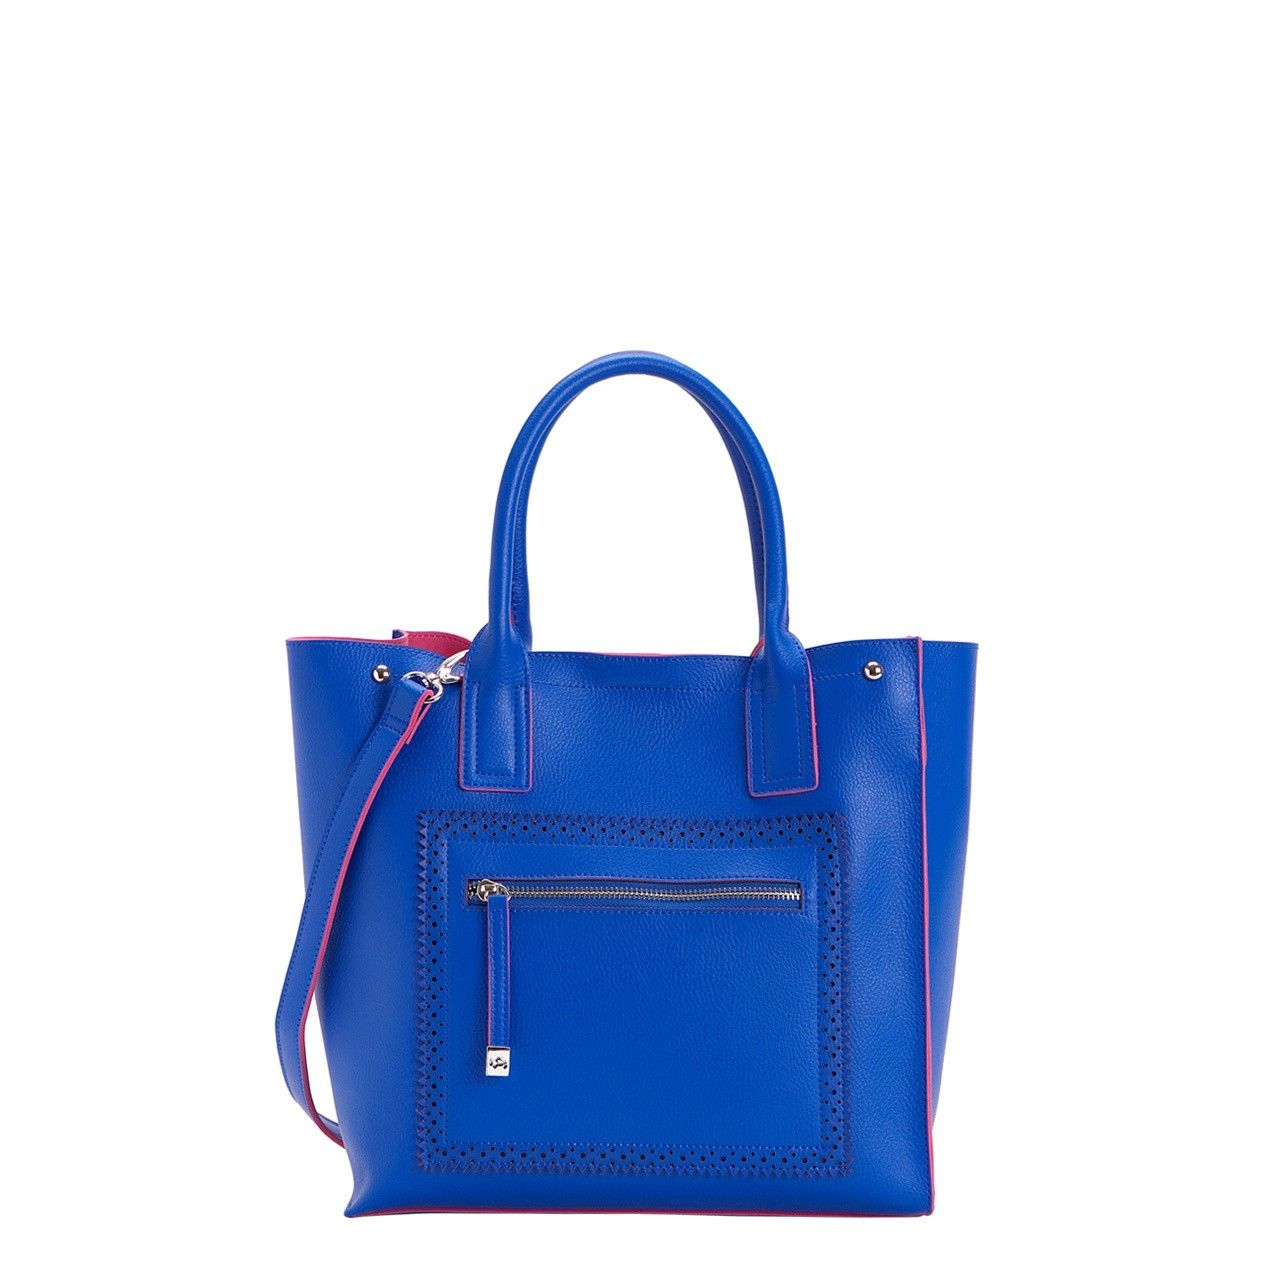 selezione premium 15455 1433e Carpisa blue bag | Everyday bags | Fashion, Fashion tips ...